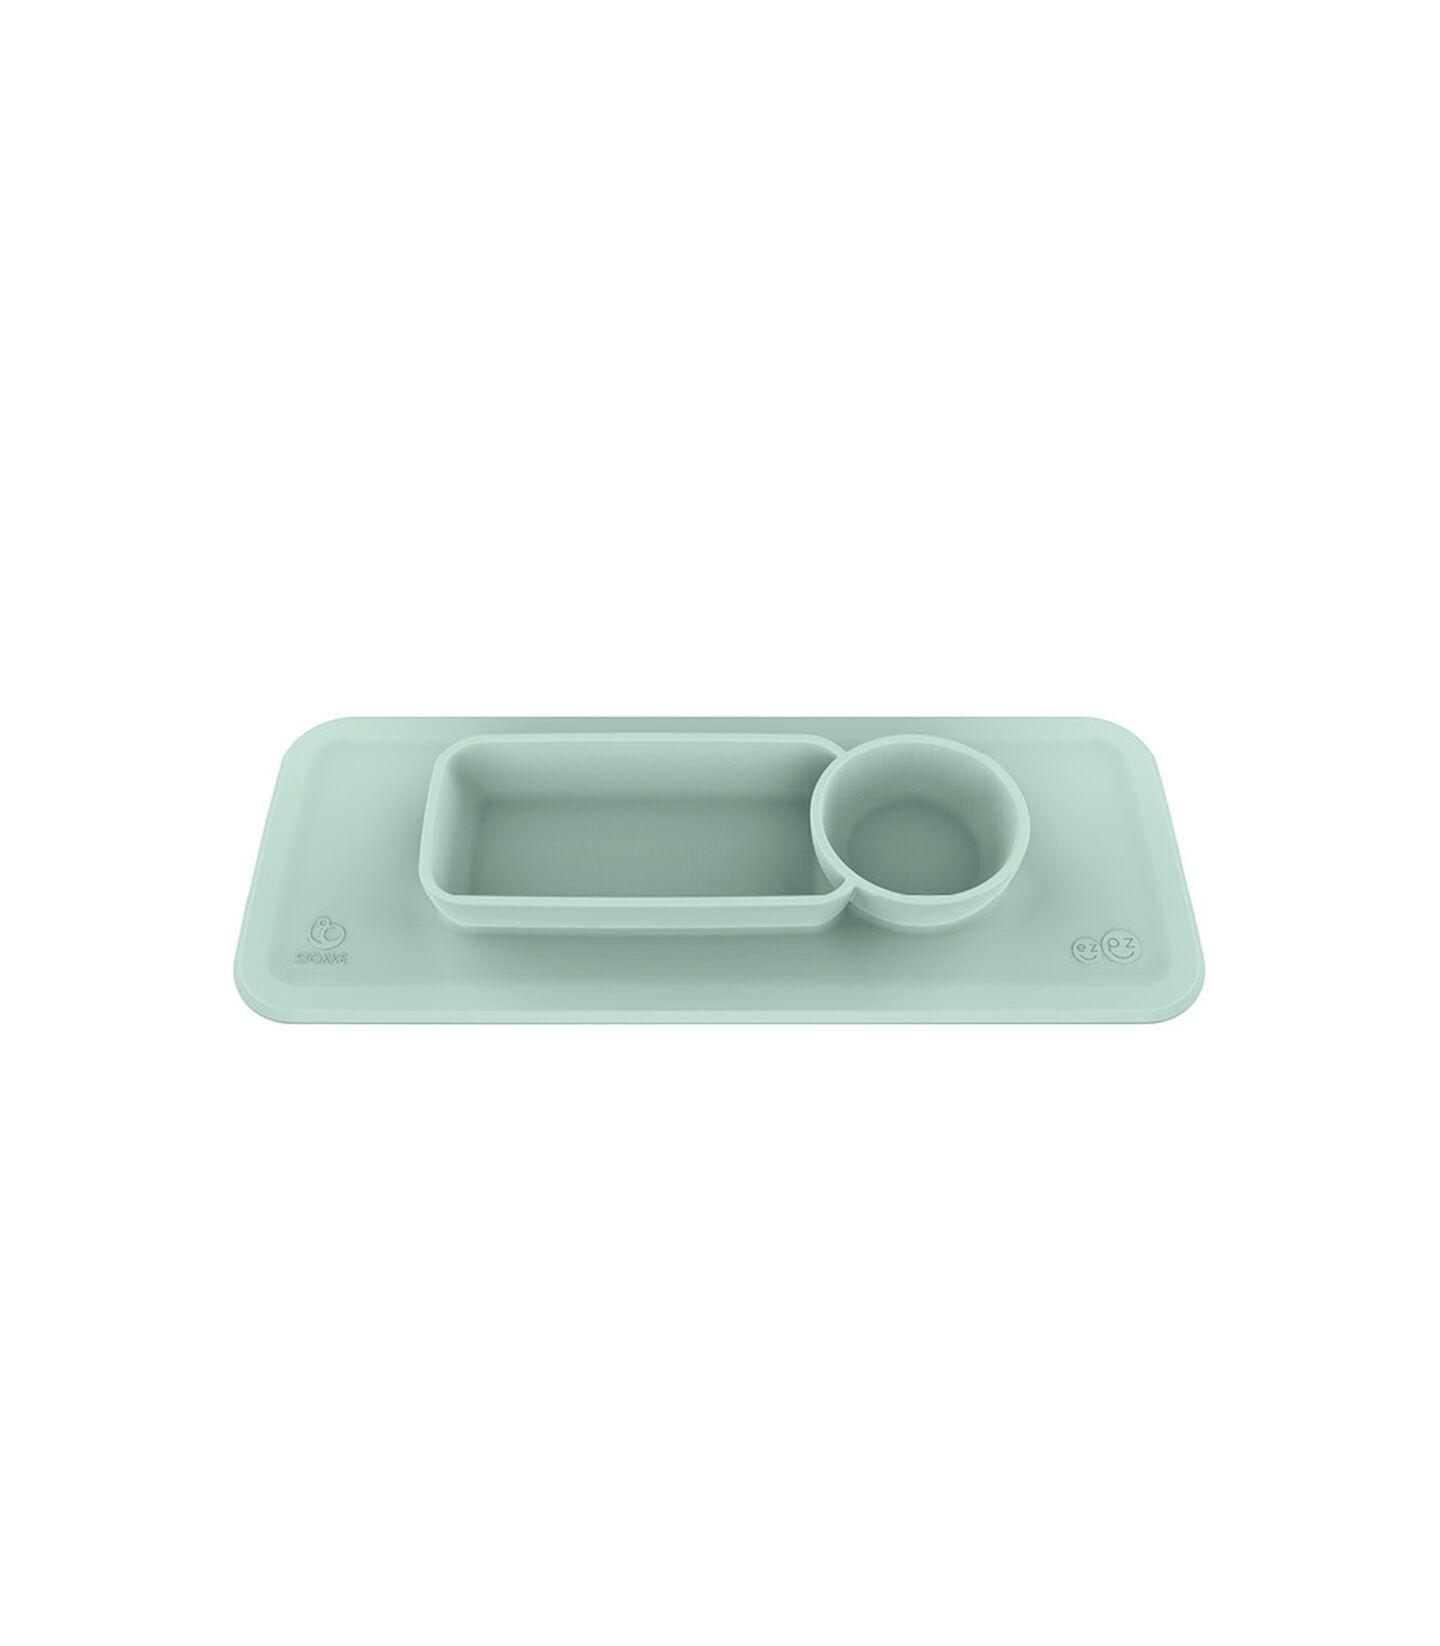 ezpz™ by Stokke™ placemat for Clikk™ Tray Soft Mint, Soft Mint, mainview